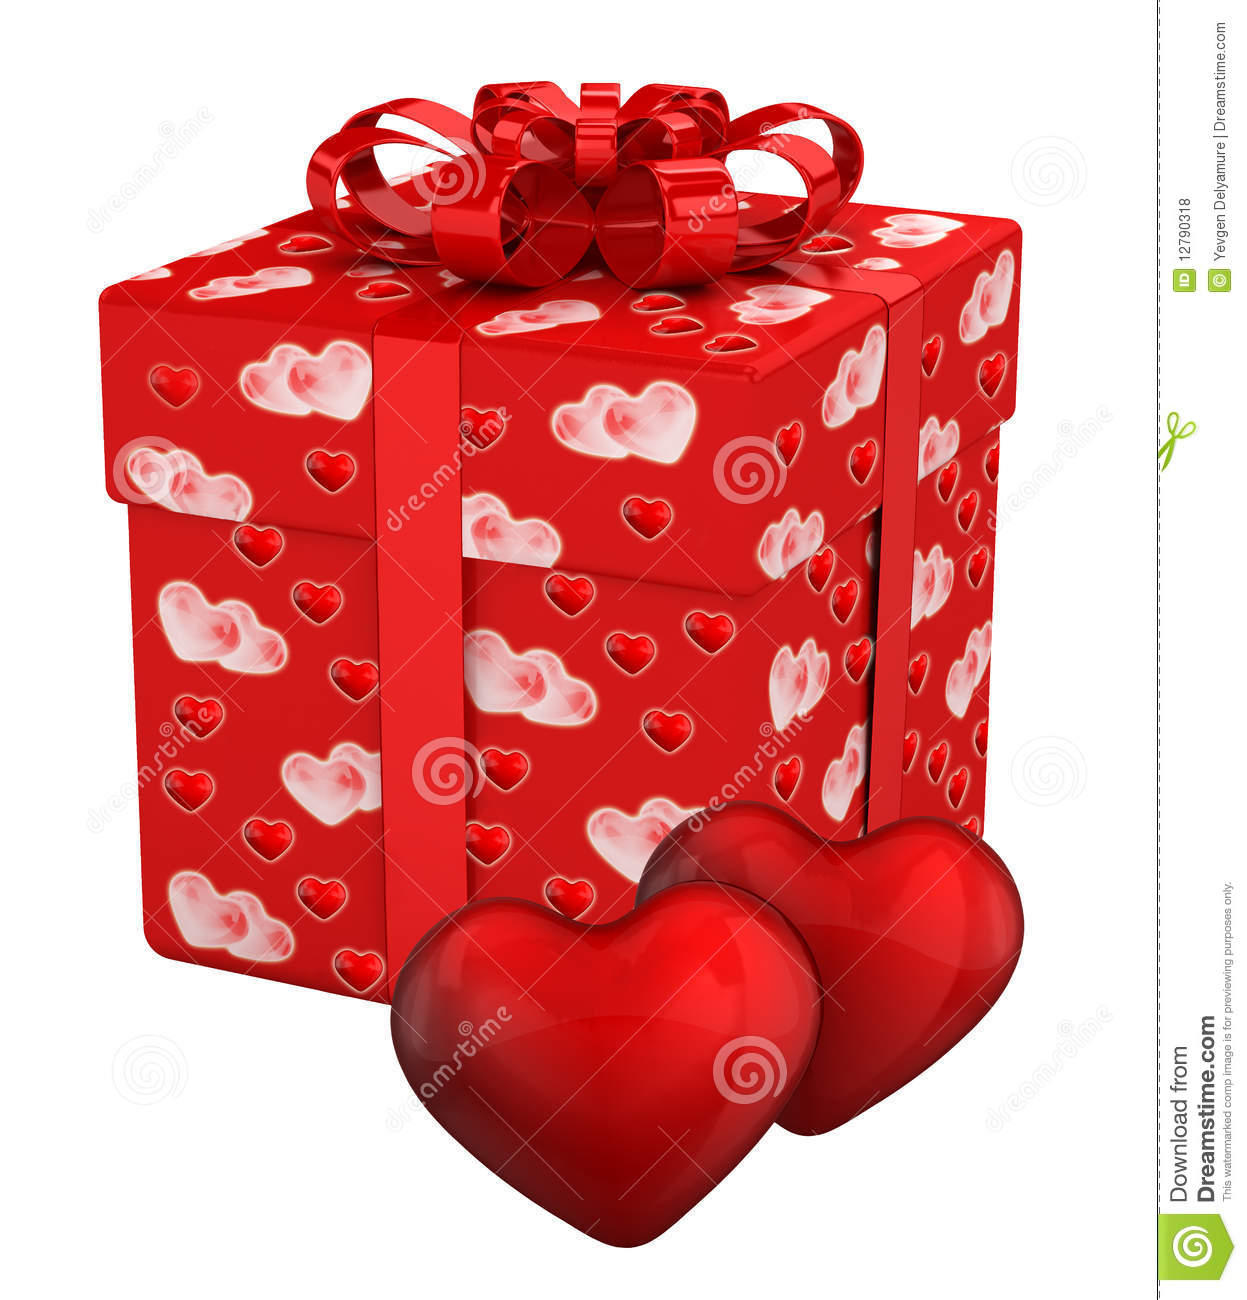 Gift Box For Valentine's Day Presents Royalty Free Stock Photos ...